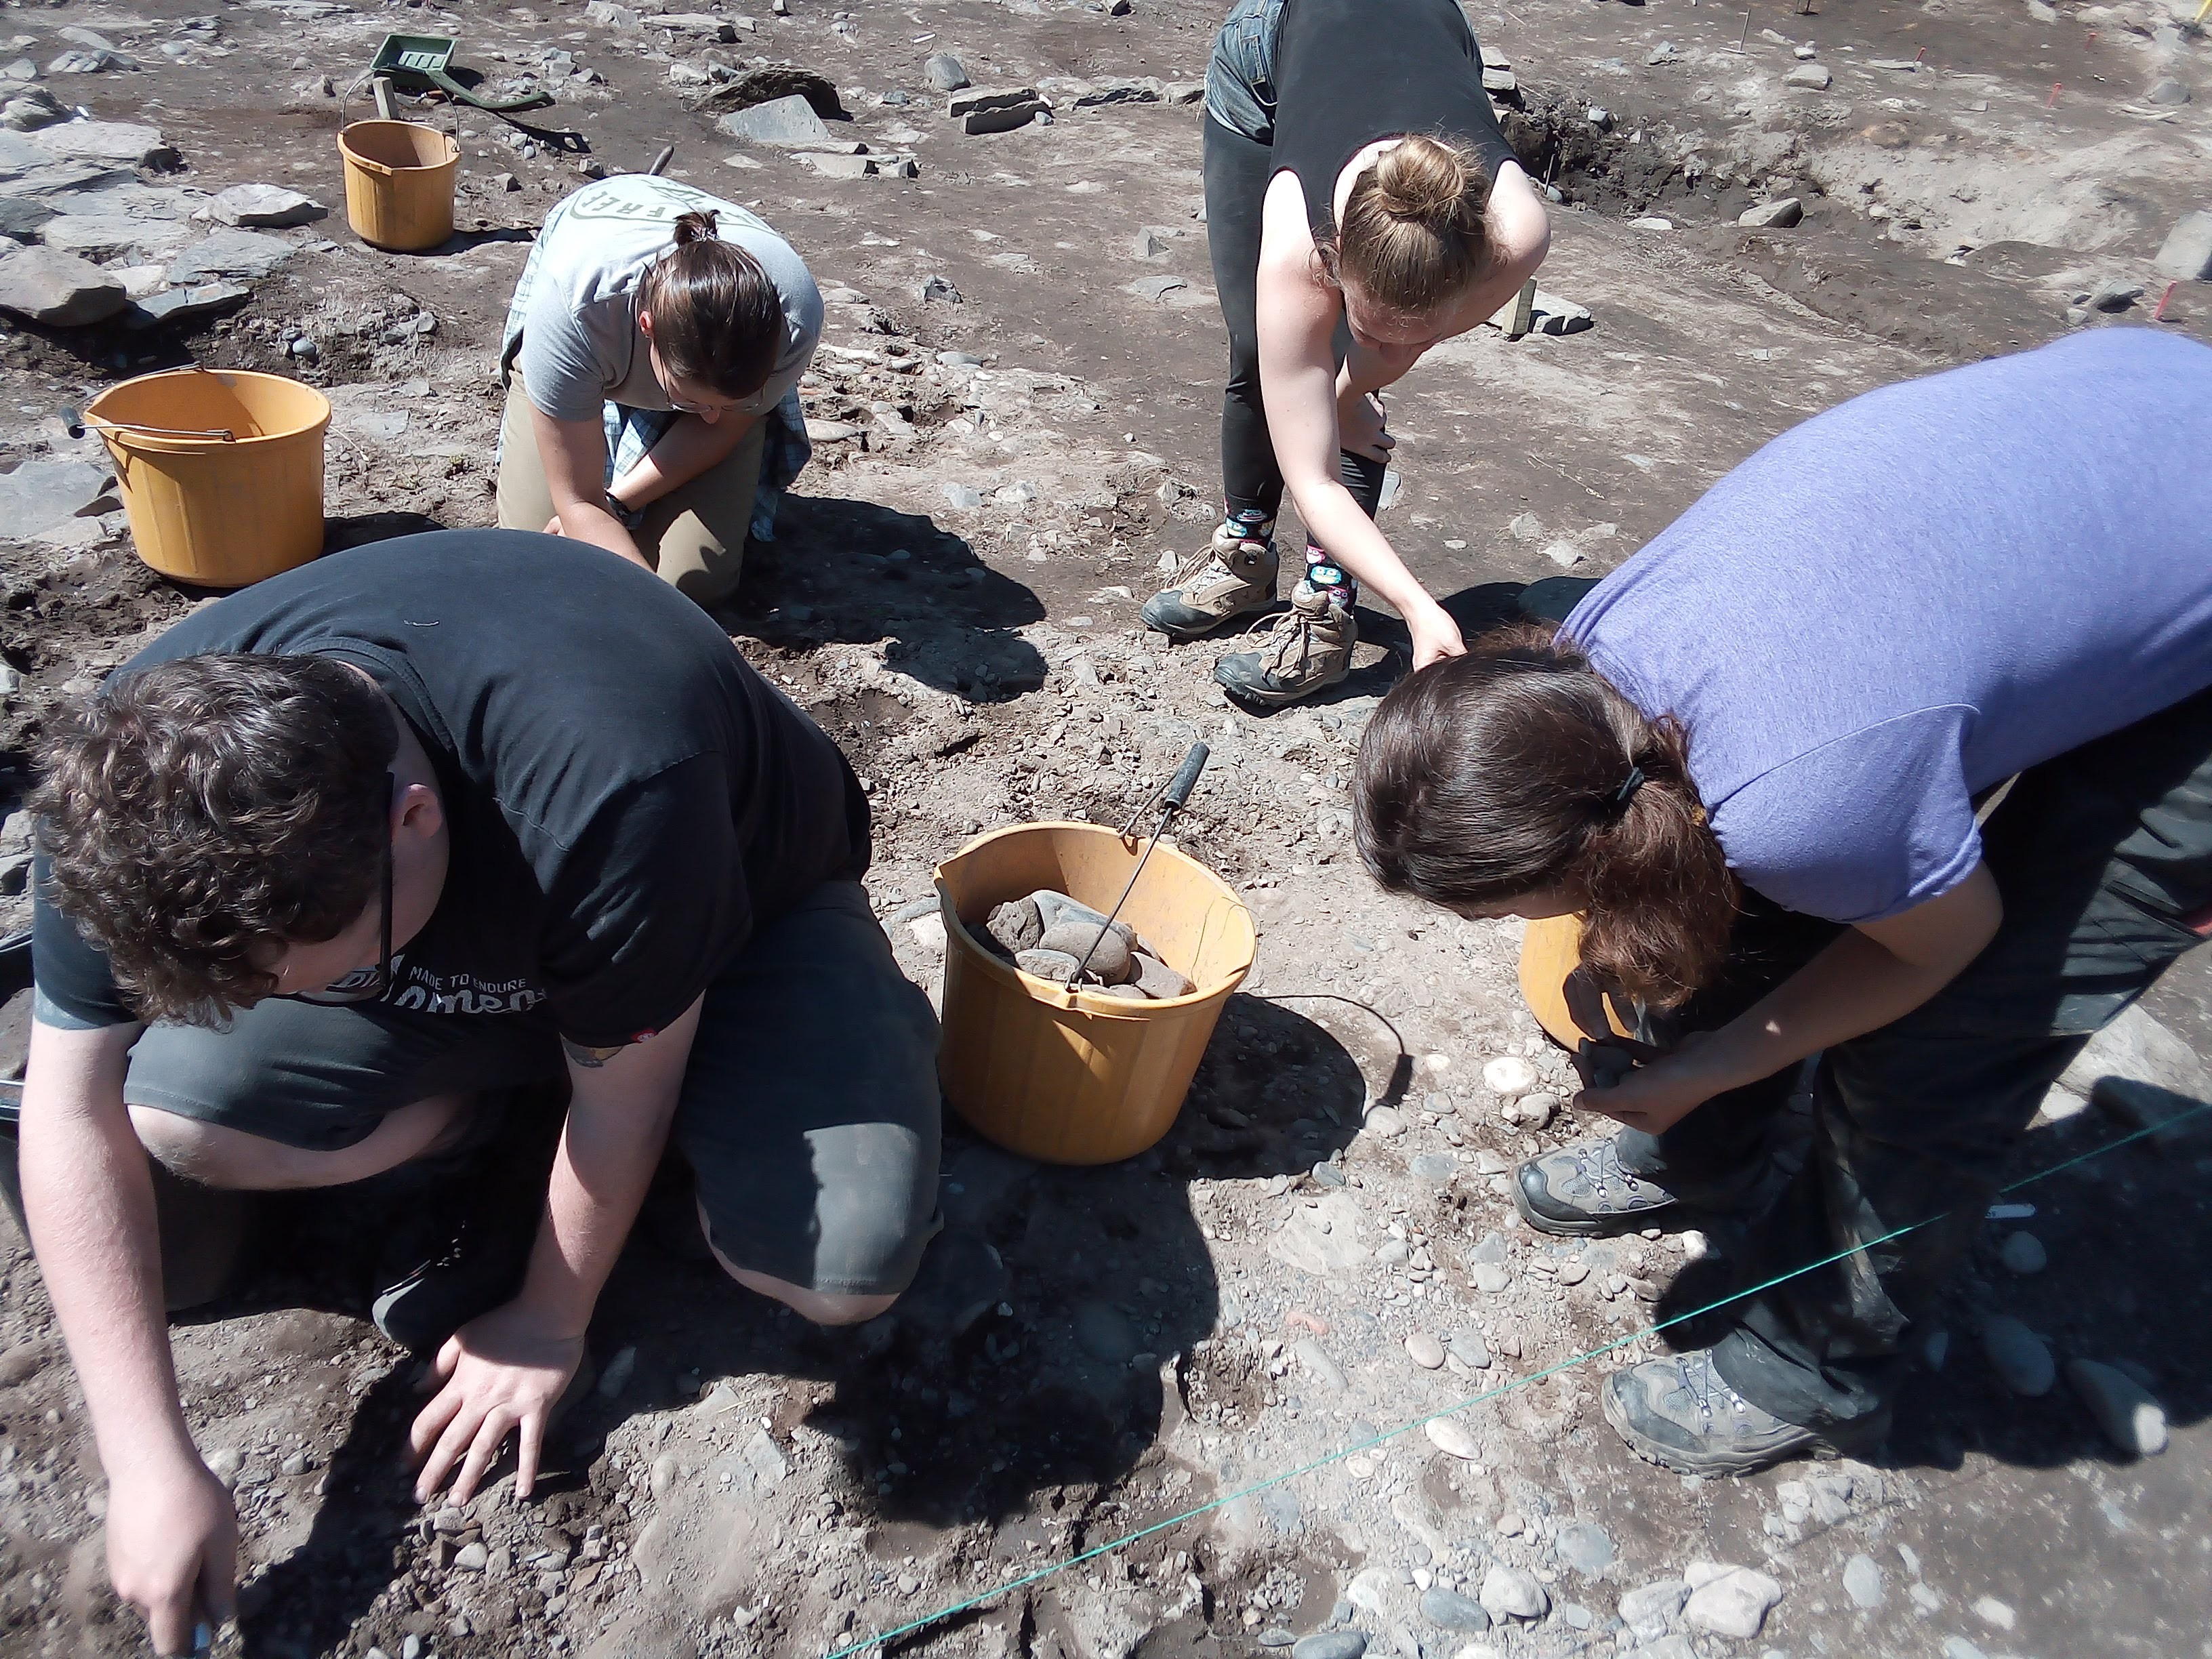 Four adults crouch to lift small grey and blue cobbles and place them in yellow buckets.